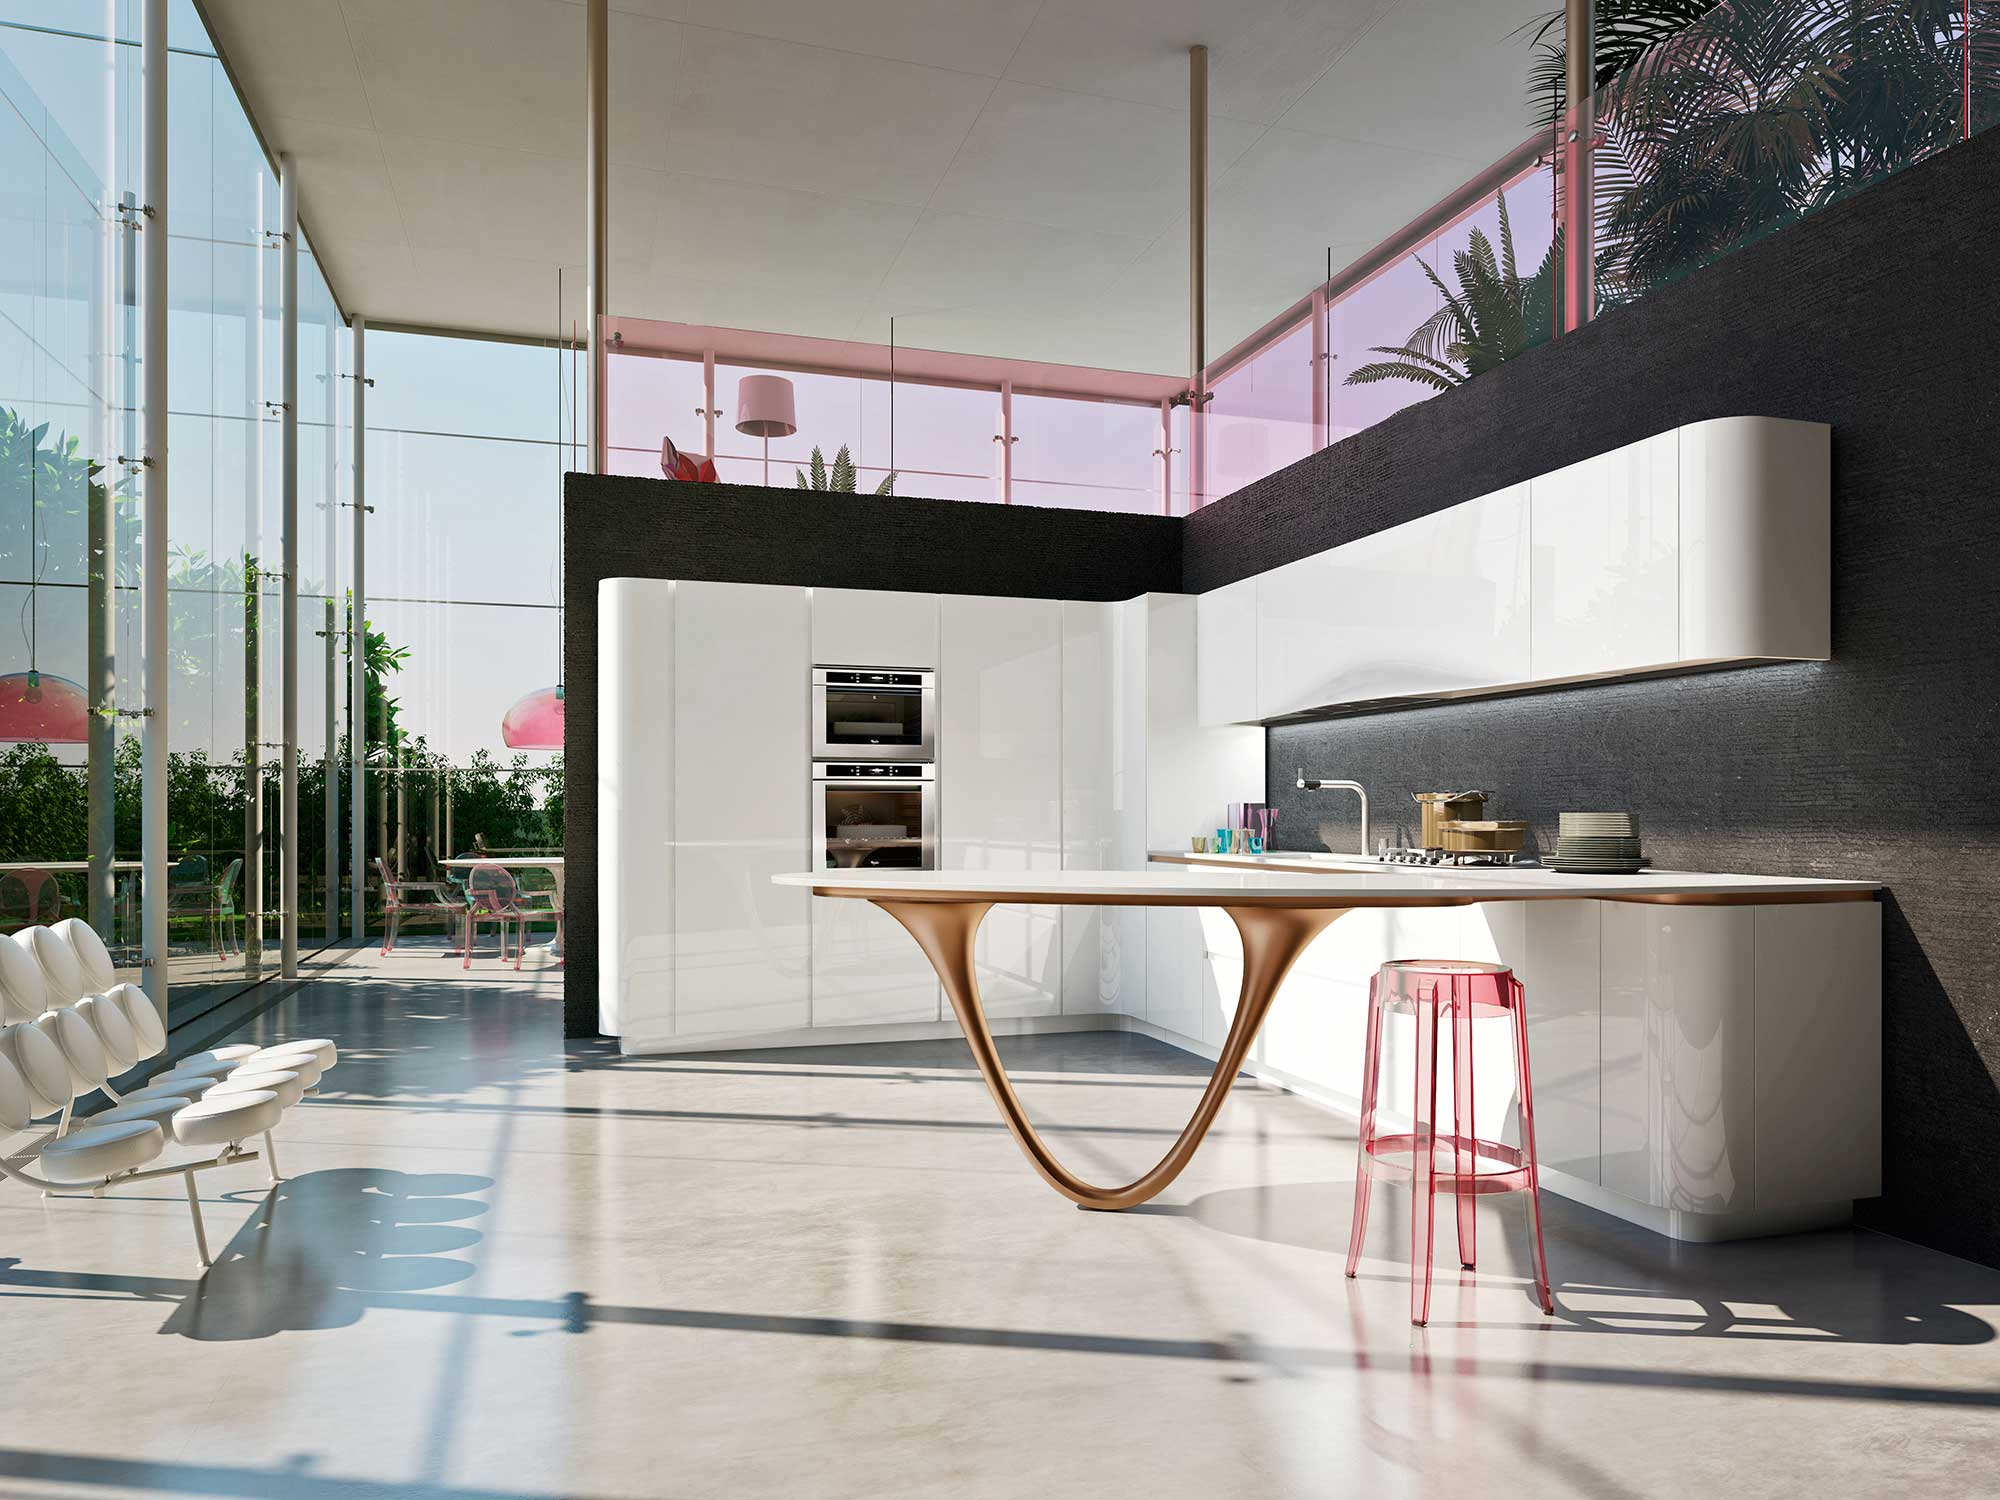 Ideas y dise o de cocinas modernas for Ideas diseno cocina